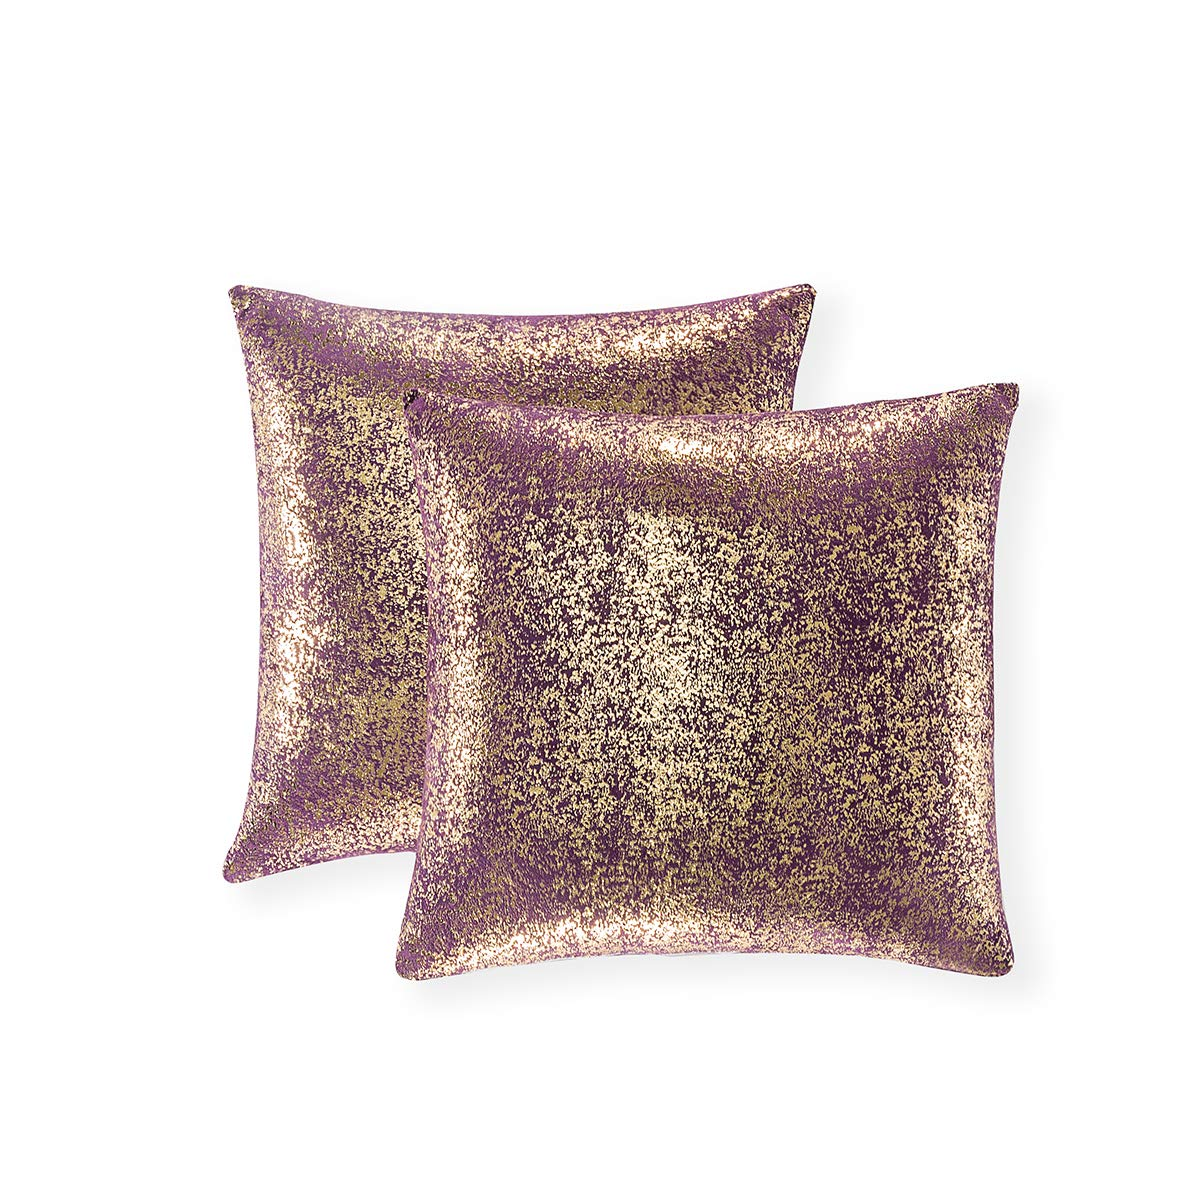 Set of 2, Throw Pillow Covers, Cushion Cases, Decorative Square Pillow Case, Slipover Pillowslip for Home Sofa Couch Chair Back Seat Bedroom Car, Invisible Zipper, 18 x18In (Bronzing- Lavender Purple)